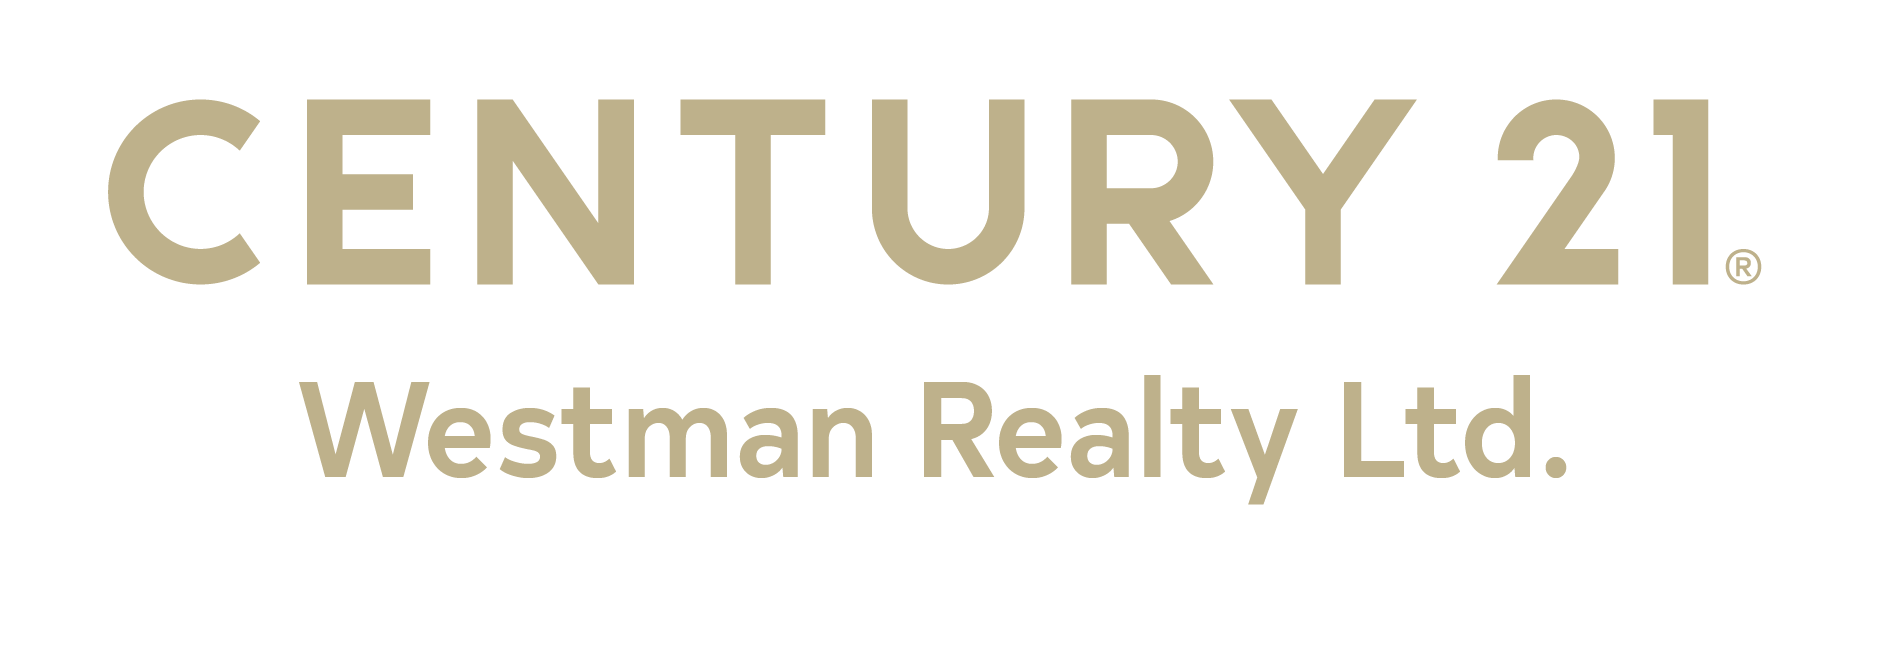 Century 21 Westman Realty